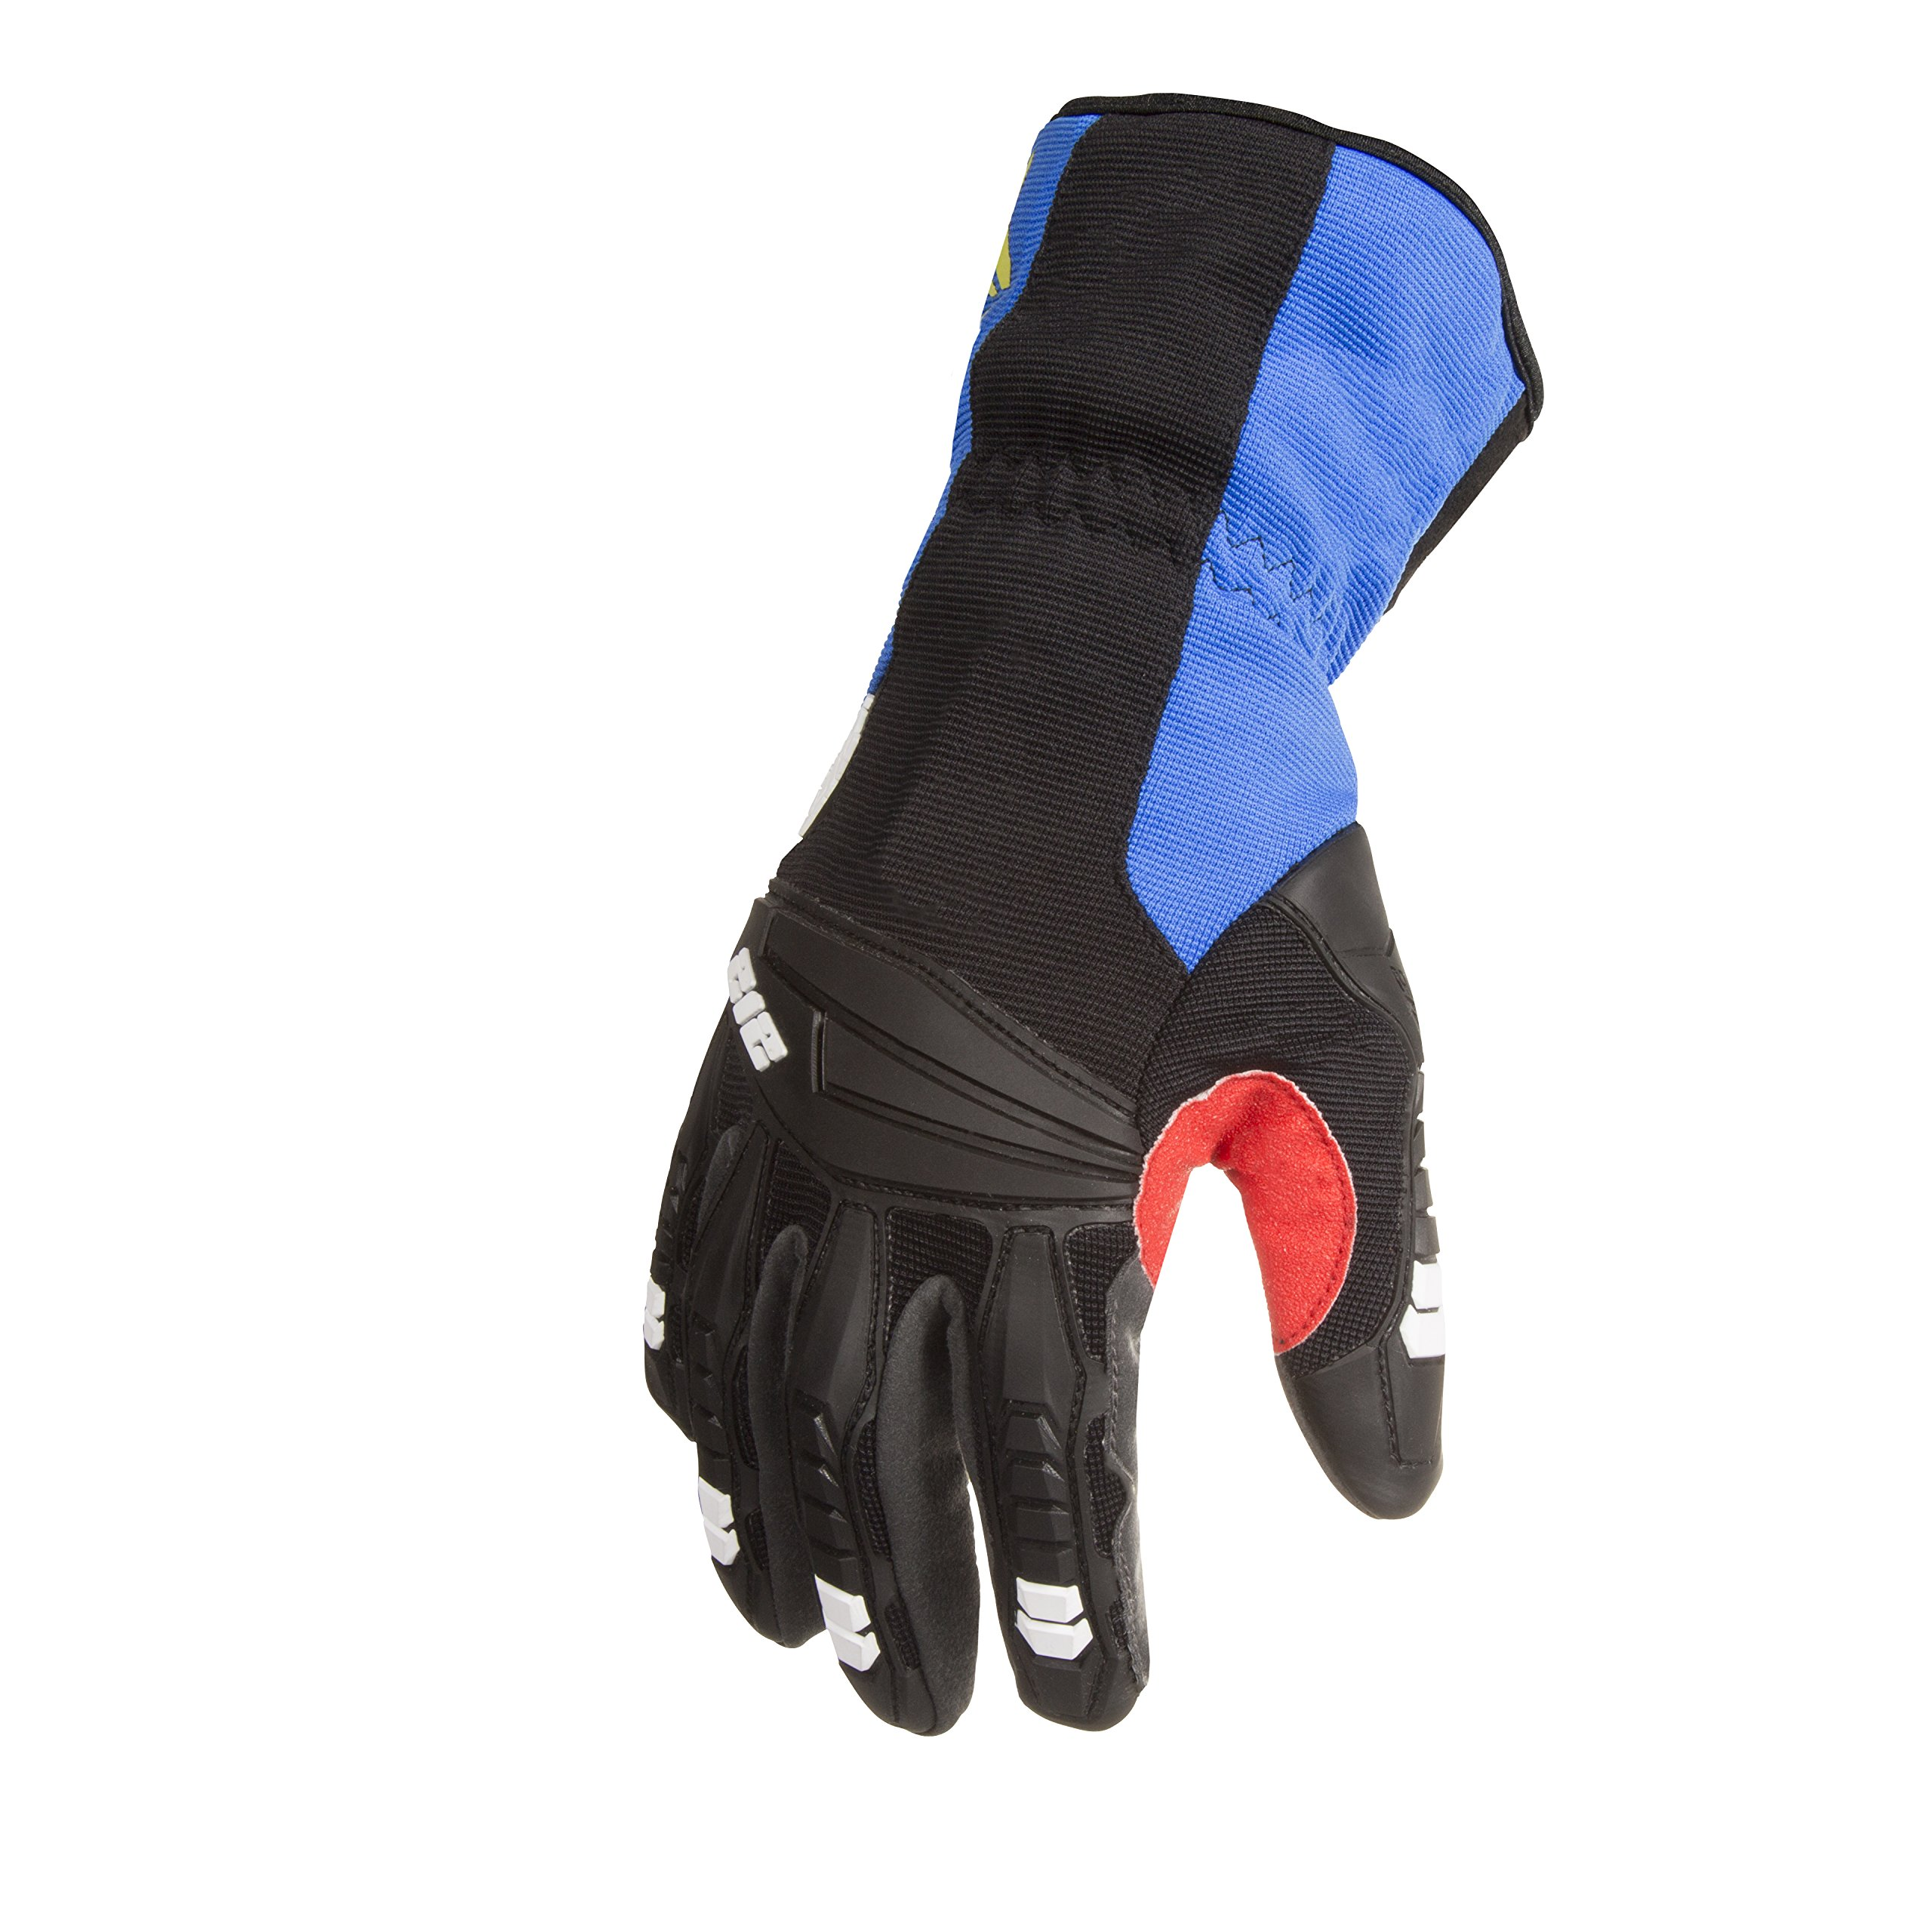 212 Performance Gloves IMPC2W-03-010 Impact Cut Resistant Winter Work Glove (EN Level 2, ANSI A2), Large by 212 Performance Gloves (Image #1)